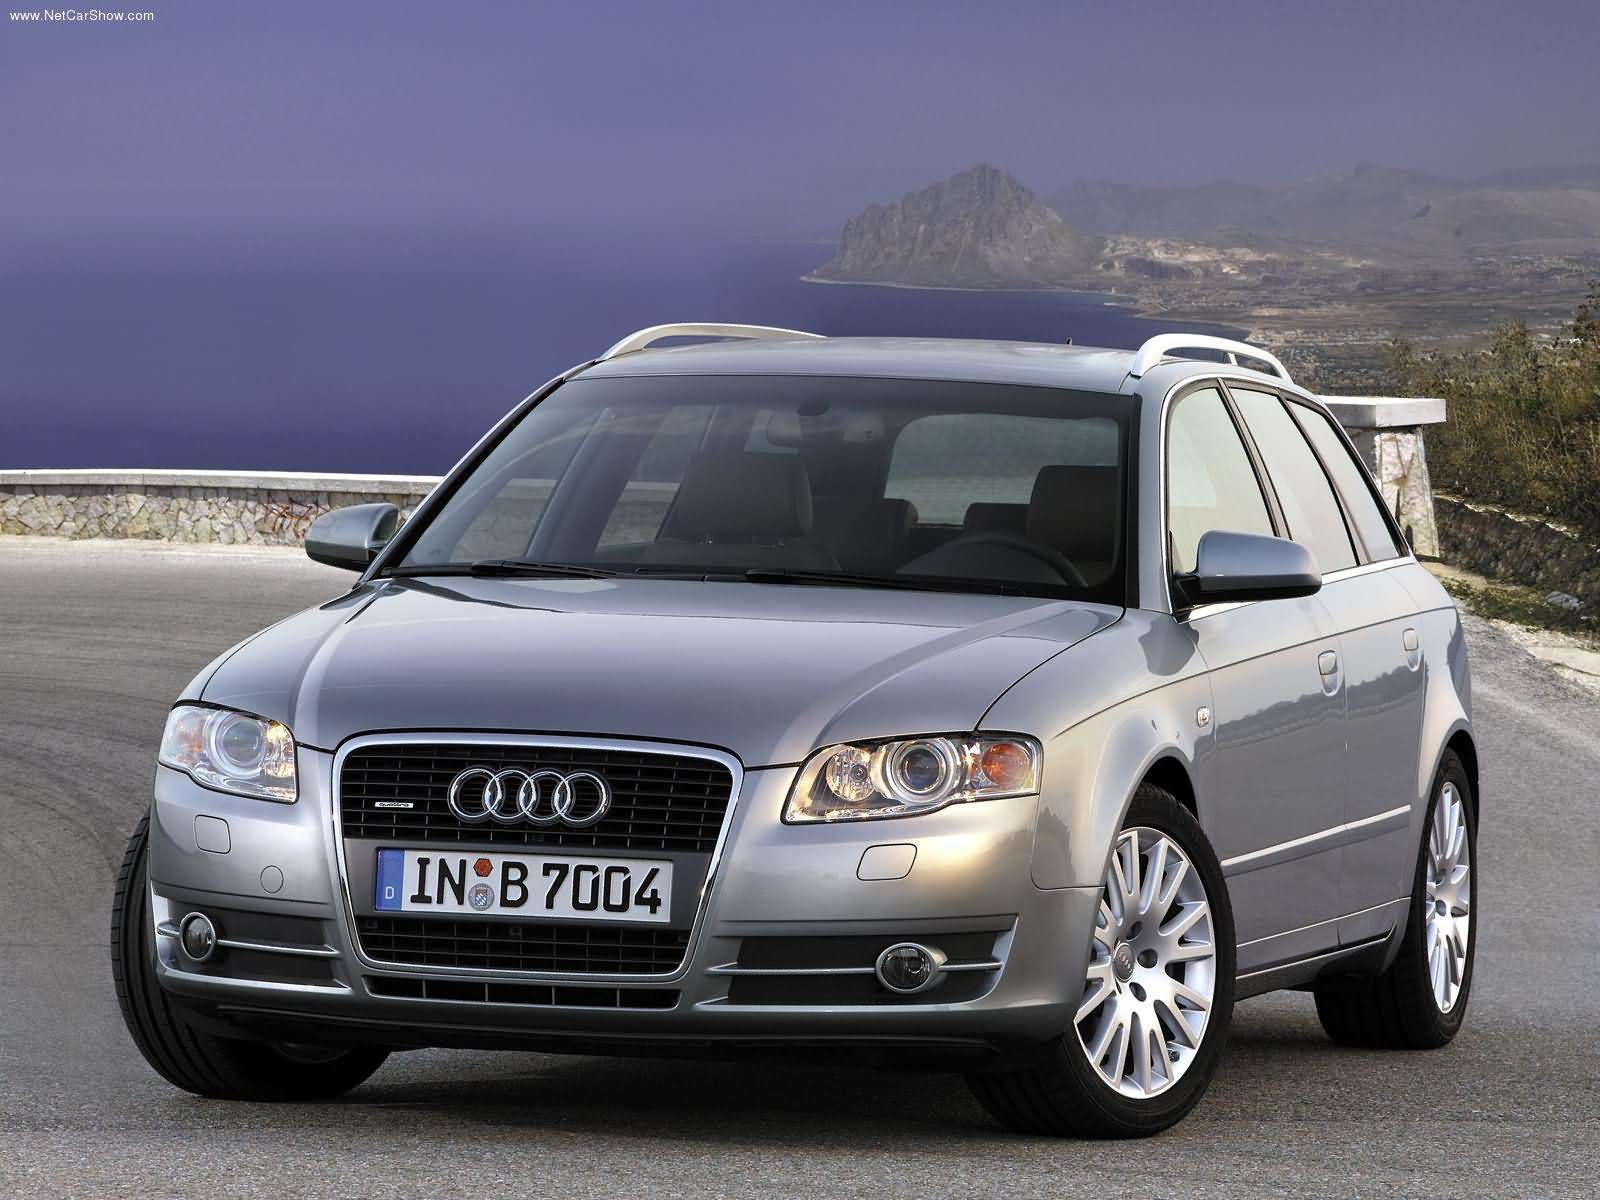 New A6 Avant from Audi 2005 or would you like to drive in the business class? #3